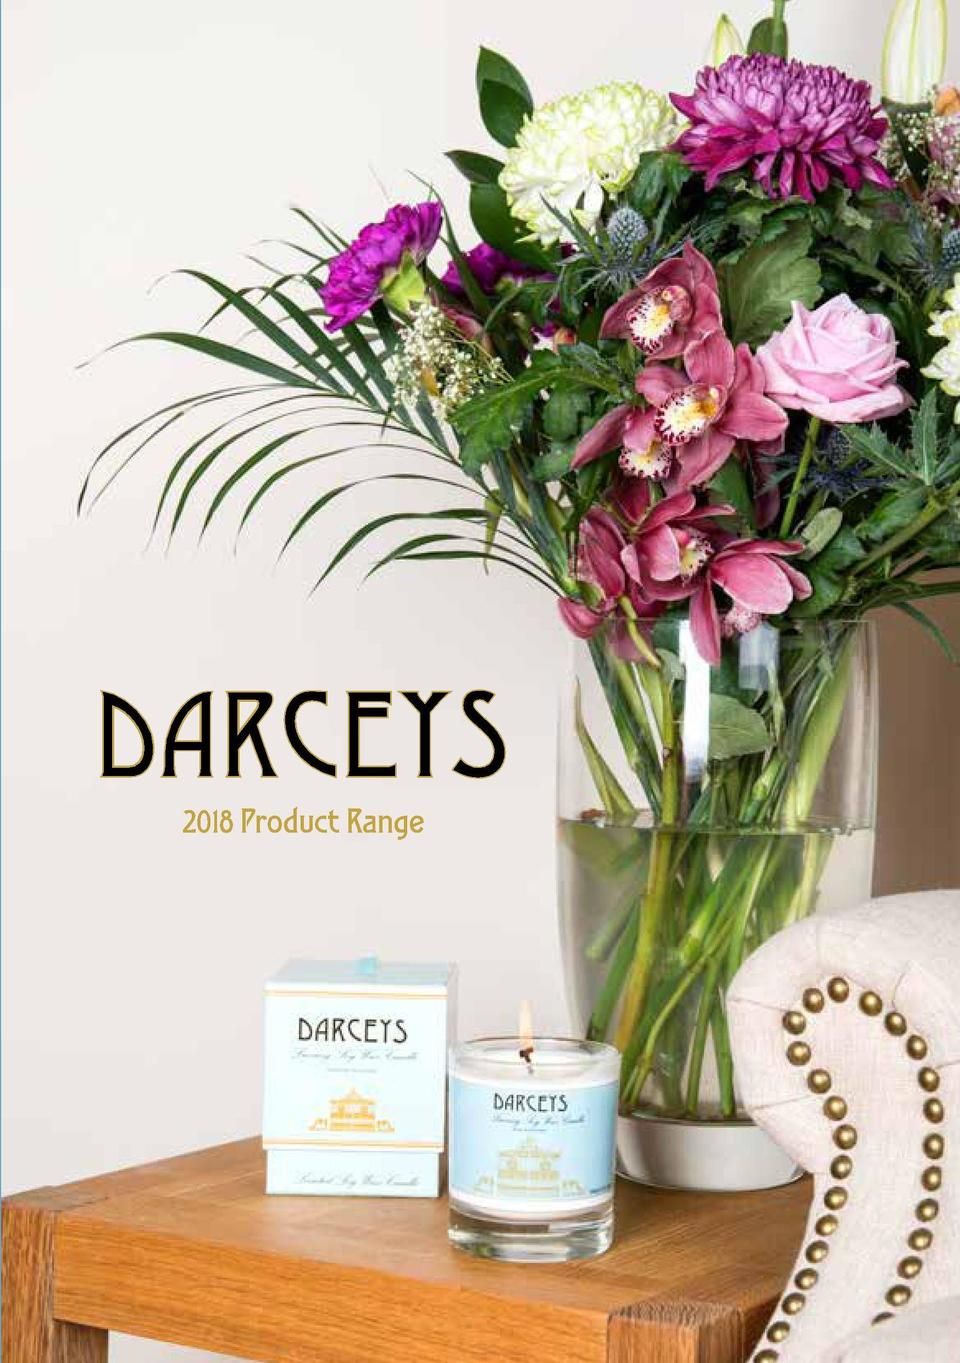 Named after the founders    daughter Darcey - The business began in 2011 with the founder making soy wax products at home ...